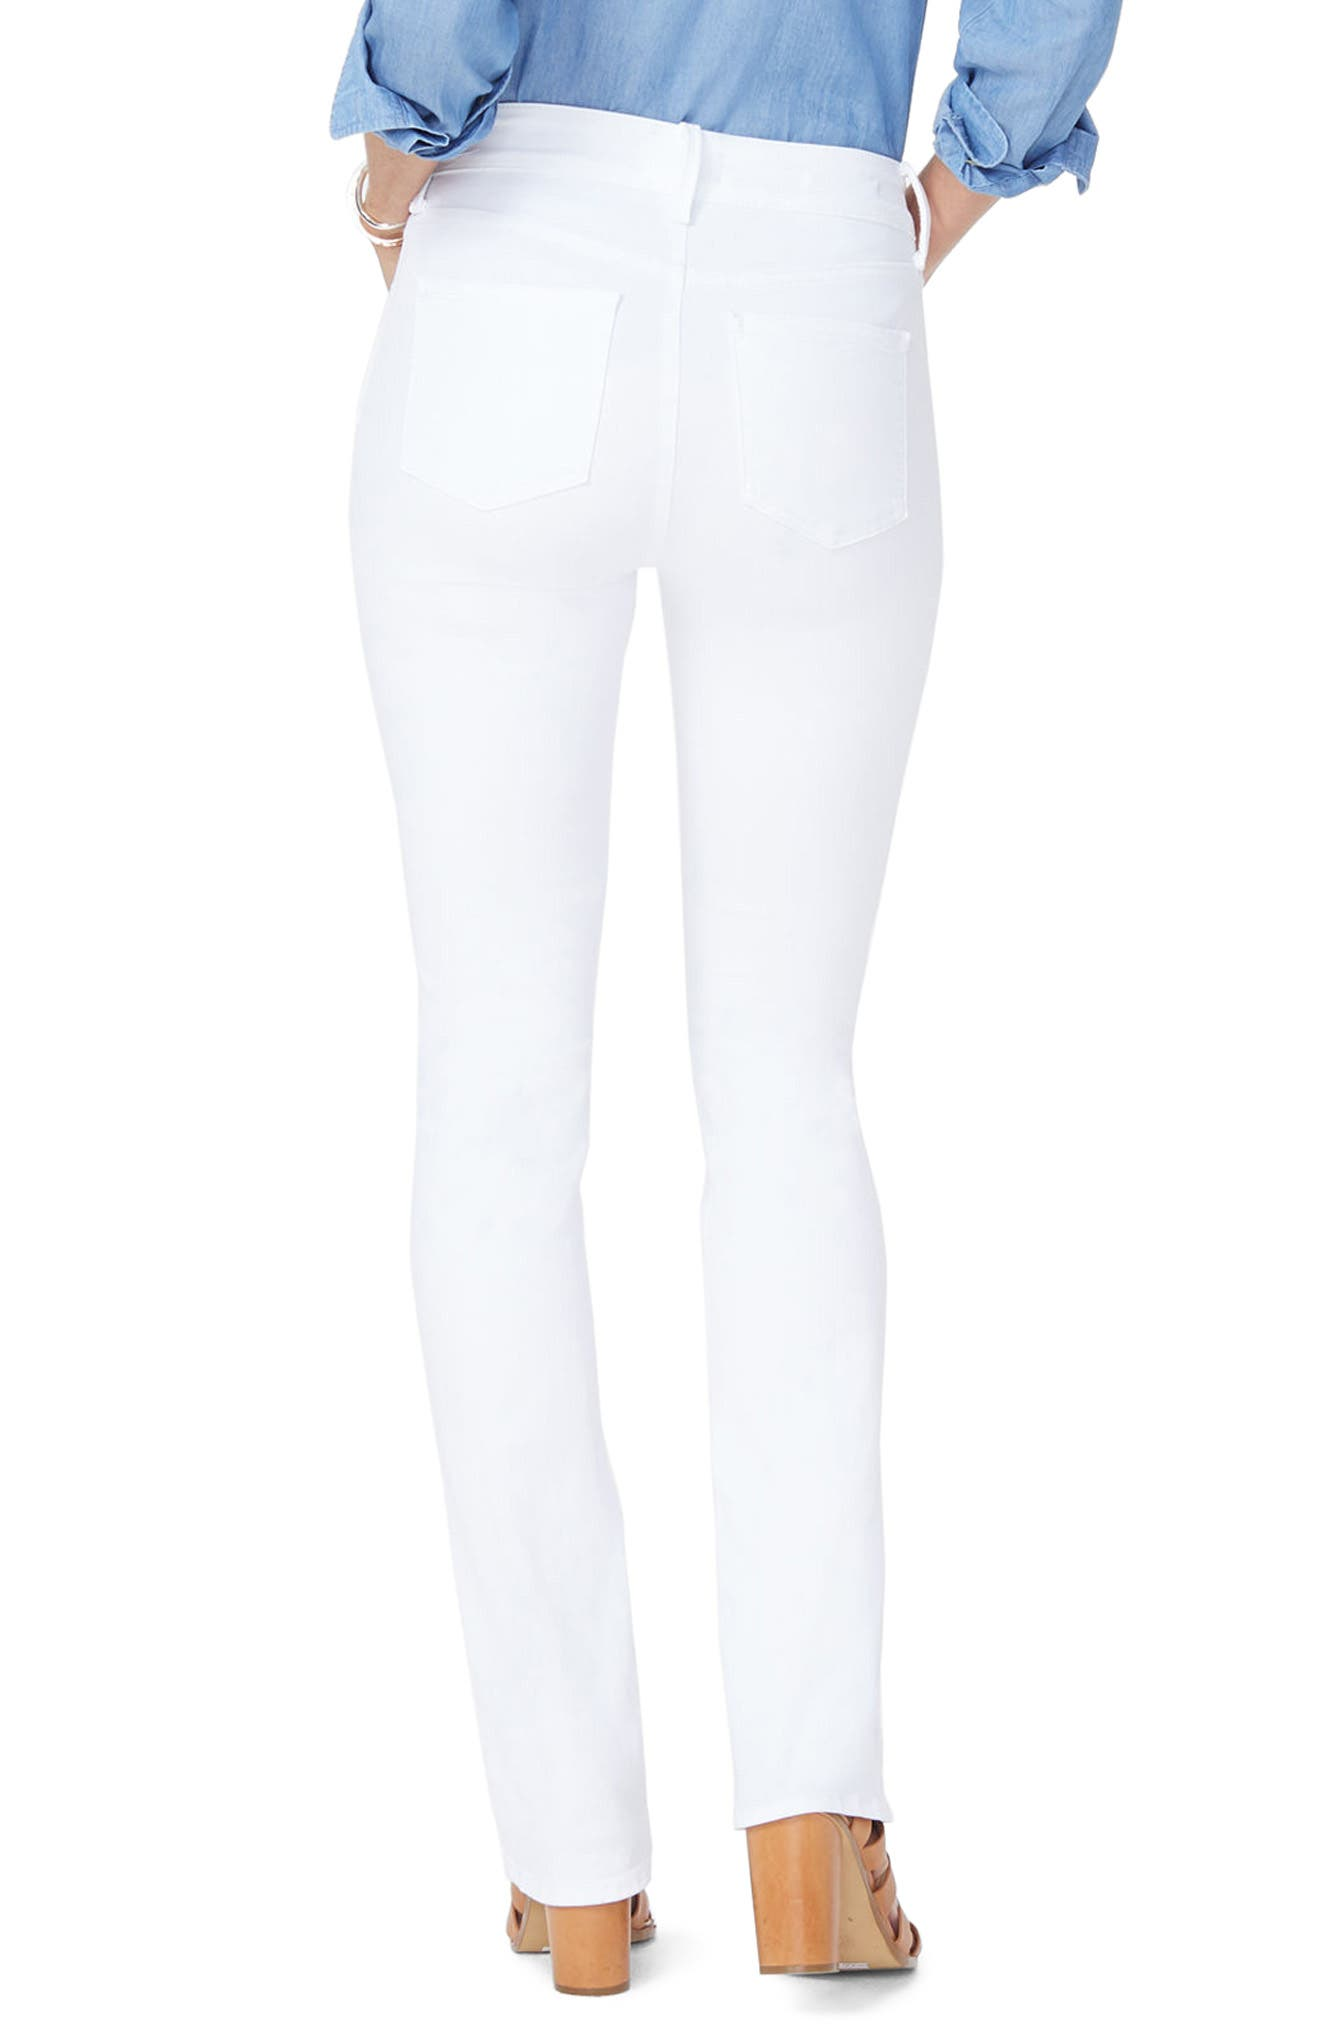 Billie Mini Bootcut Jeans,                             Alternate thumbnail 2, color,                             Optic White